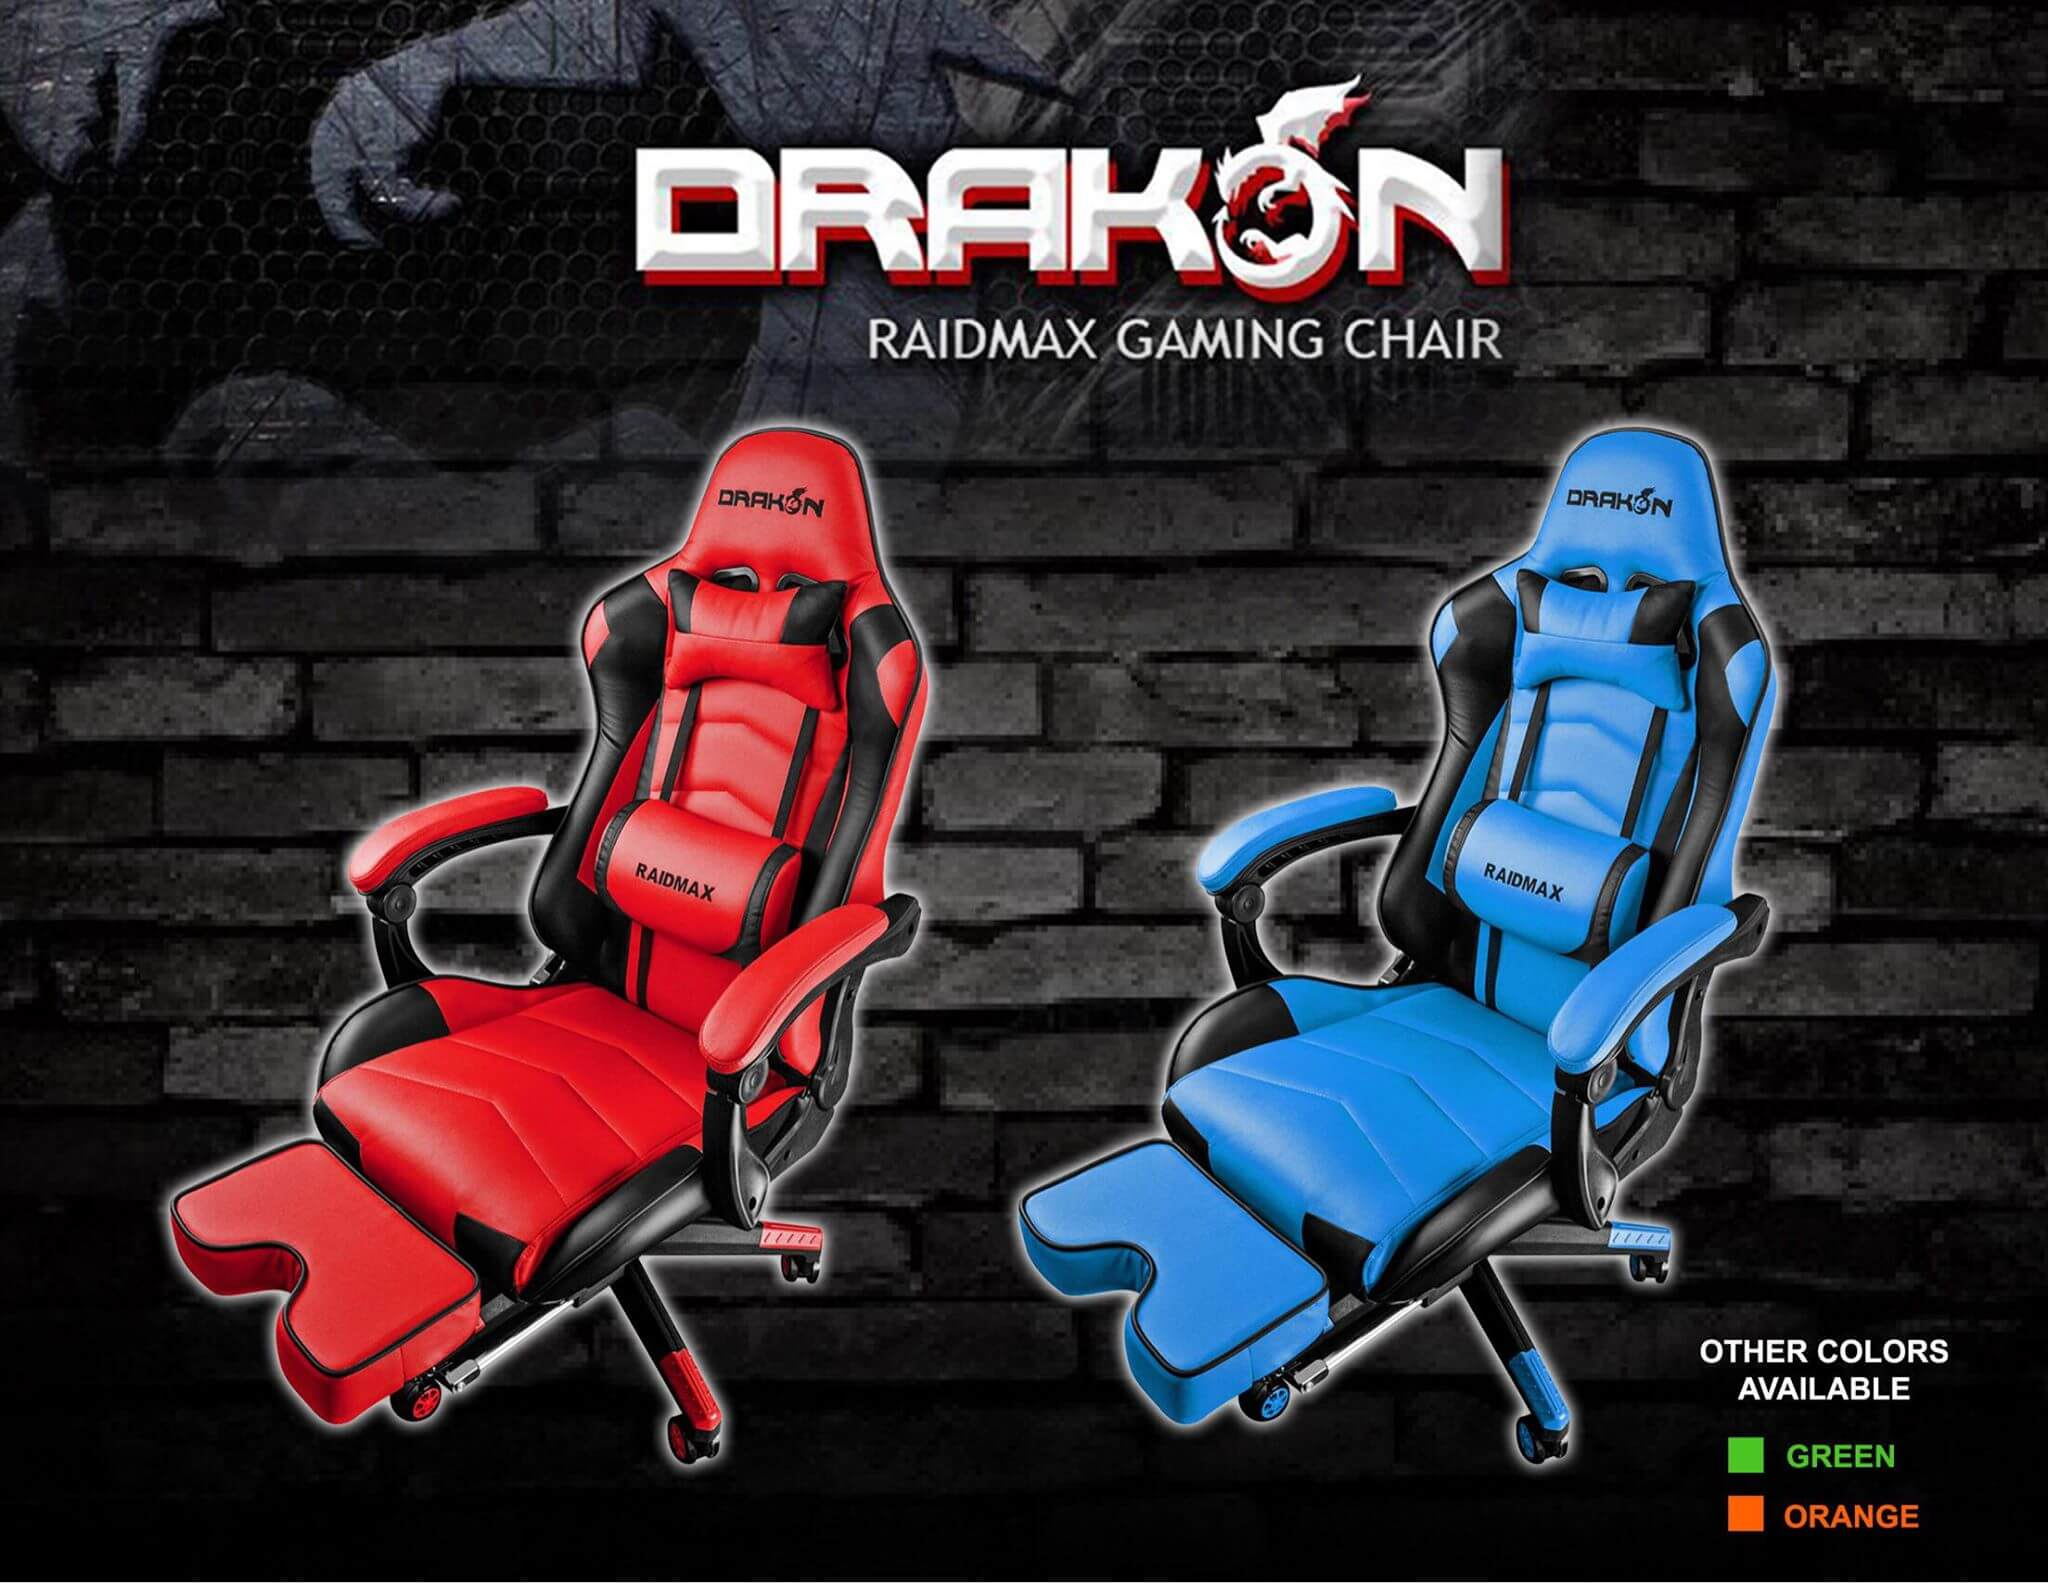 drakon 1 1 - Raidmax Drakon Gaming Chairs Now Available in PH